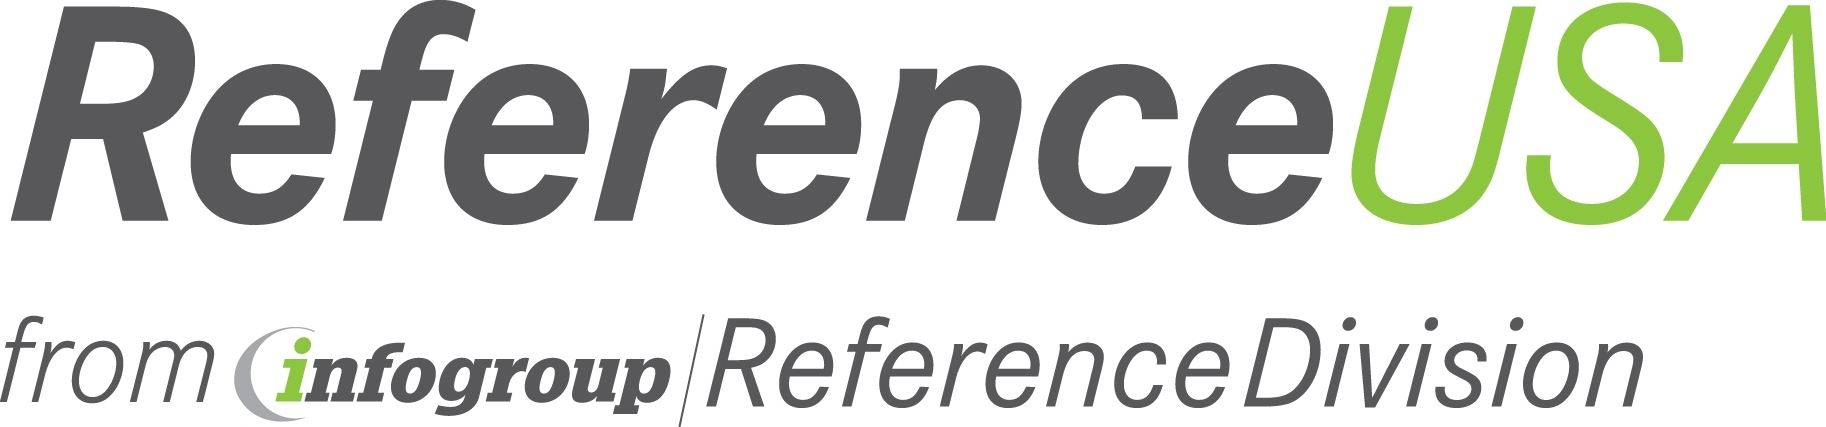 ReferenceUSA Opens in new window